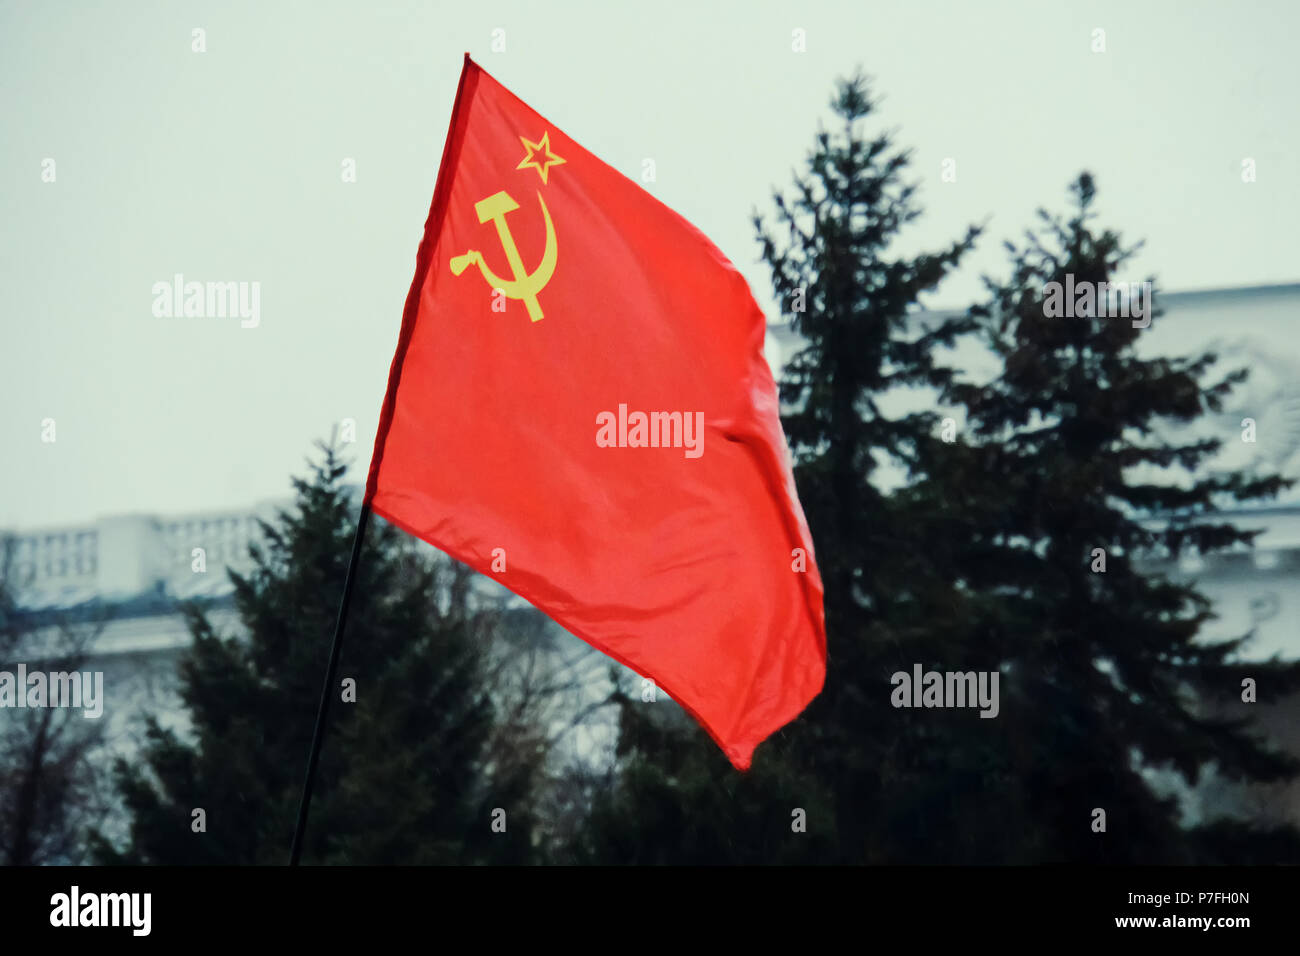 Union of Soviet Socialist Republics USSR HD flag. The flag with the hammer and sickle on a background of green trees. May day demonstration. Parade in Stock Photo